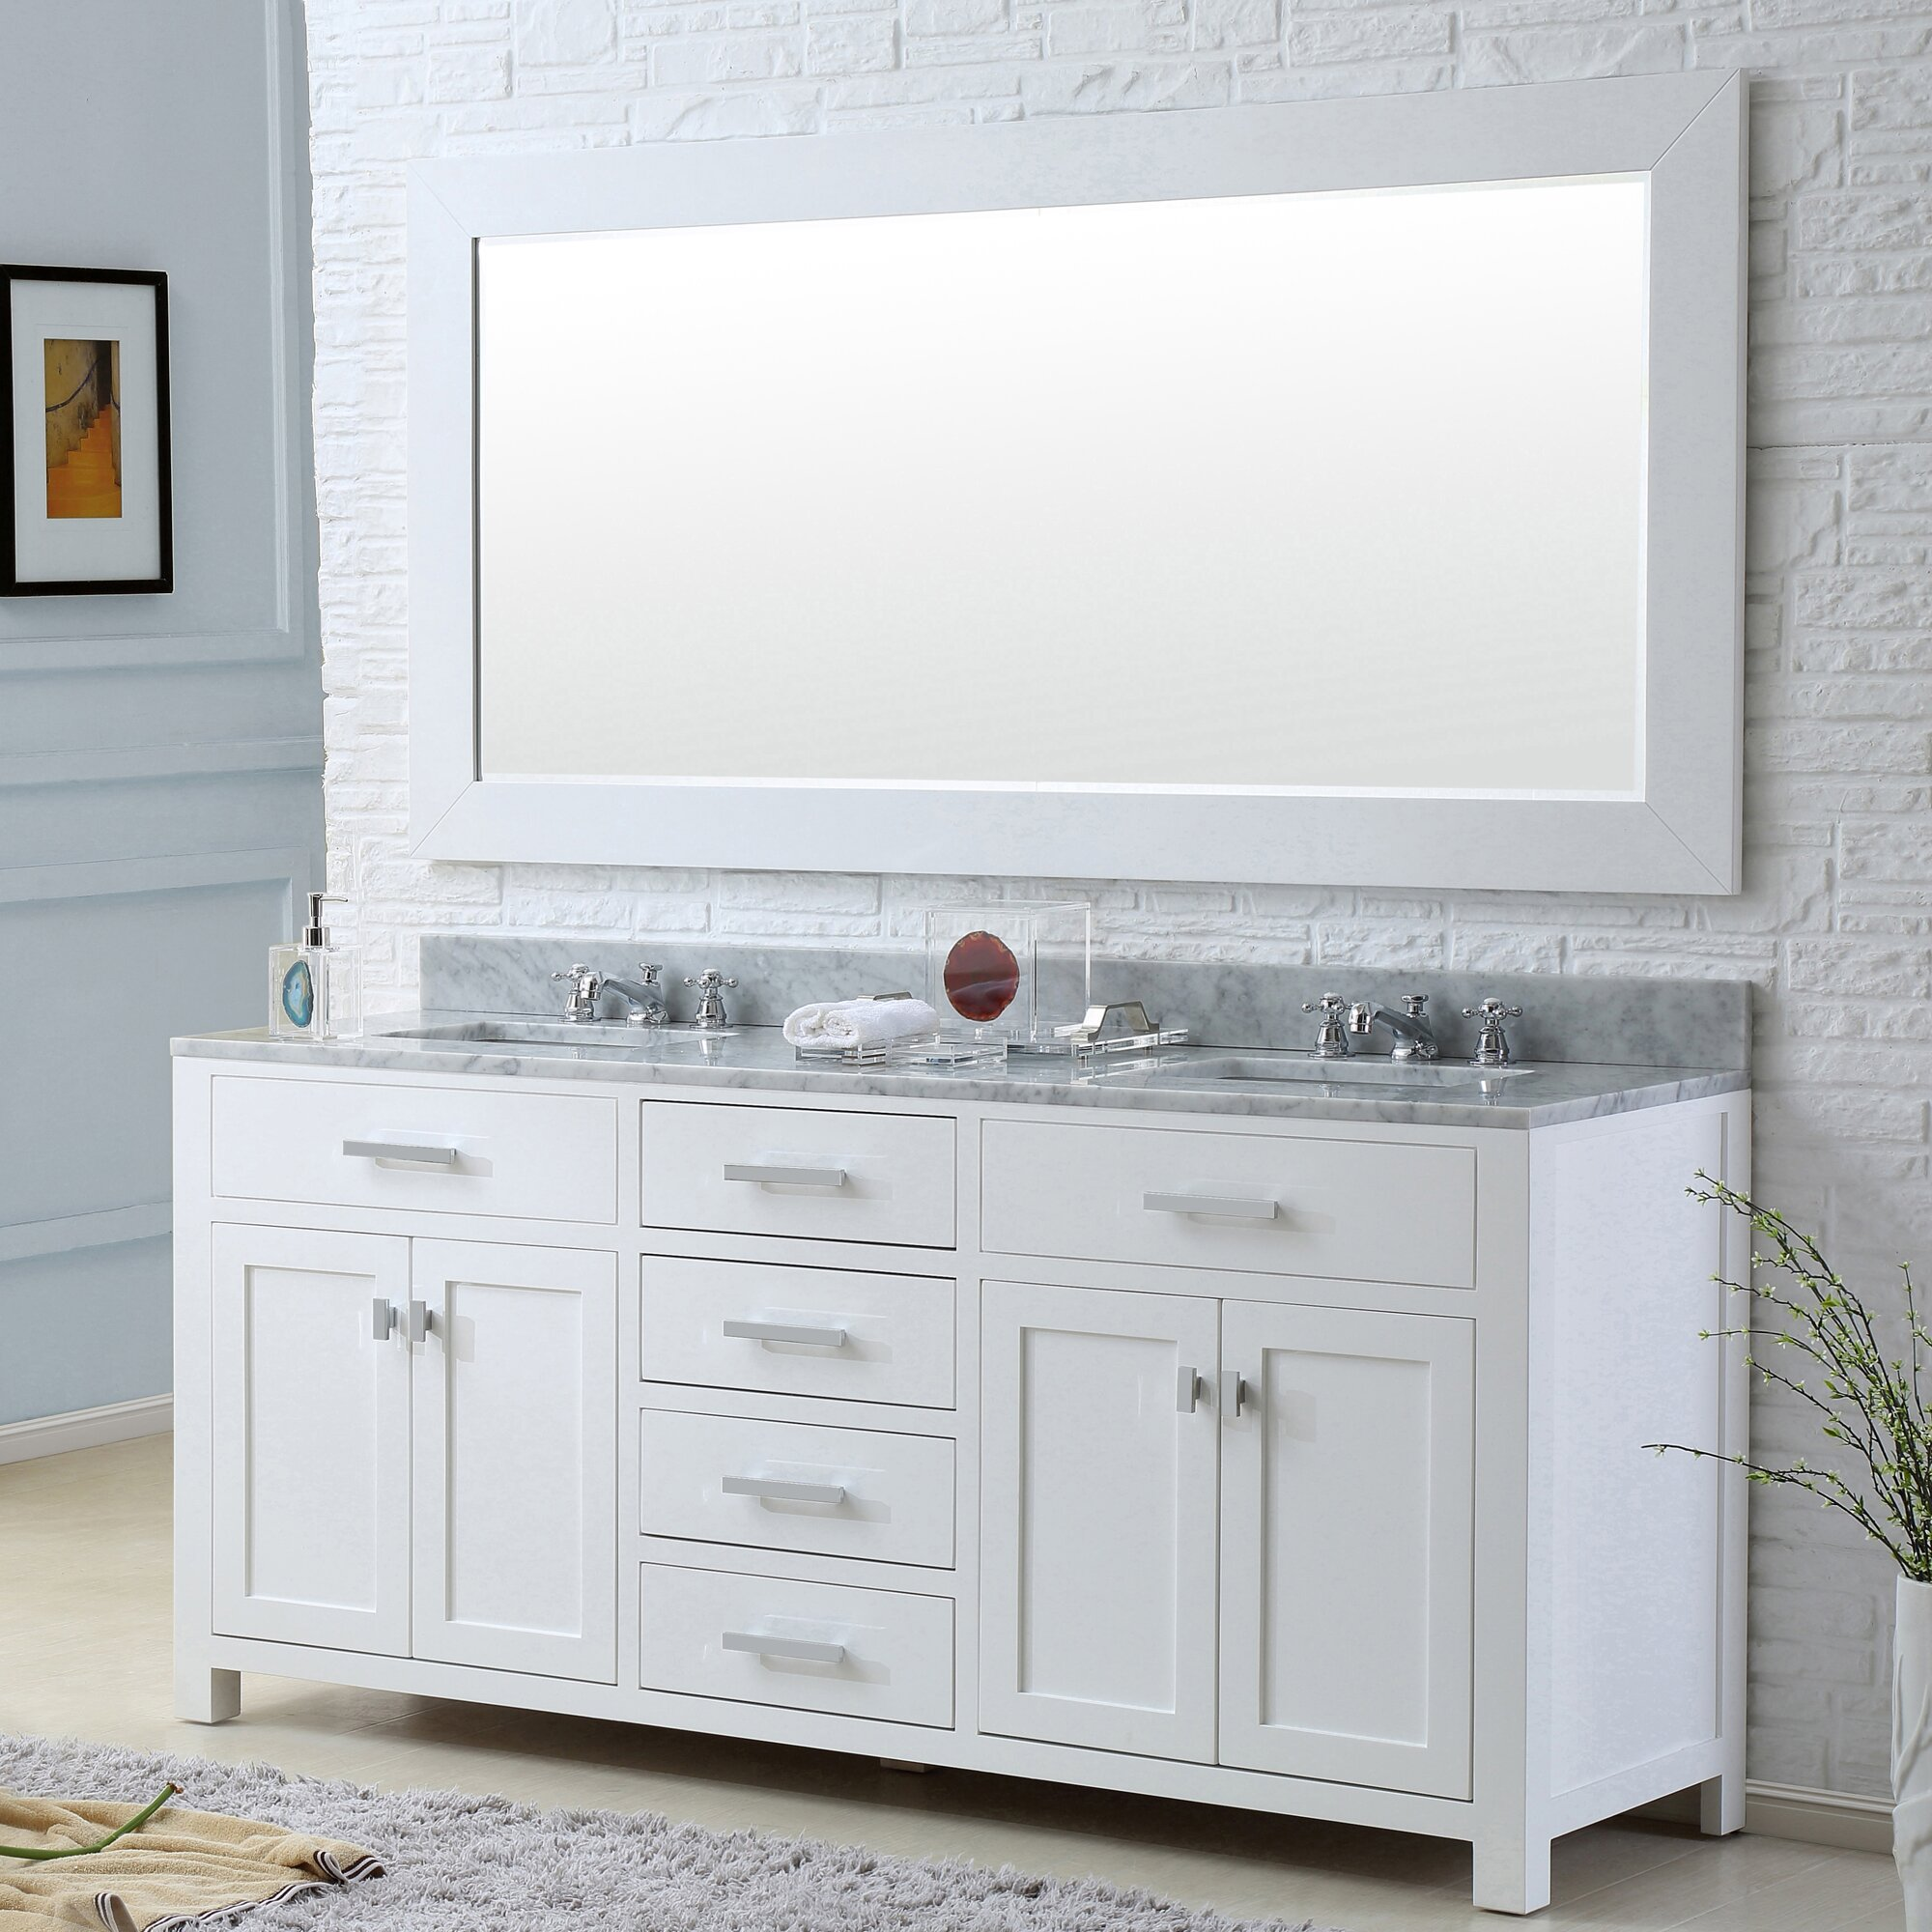 Dcor Design Creighton 60 Double Bathroom Vanity Set With Mirror Reviews Wayfair